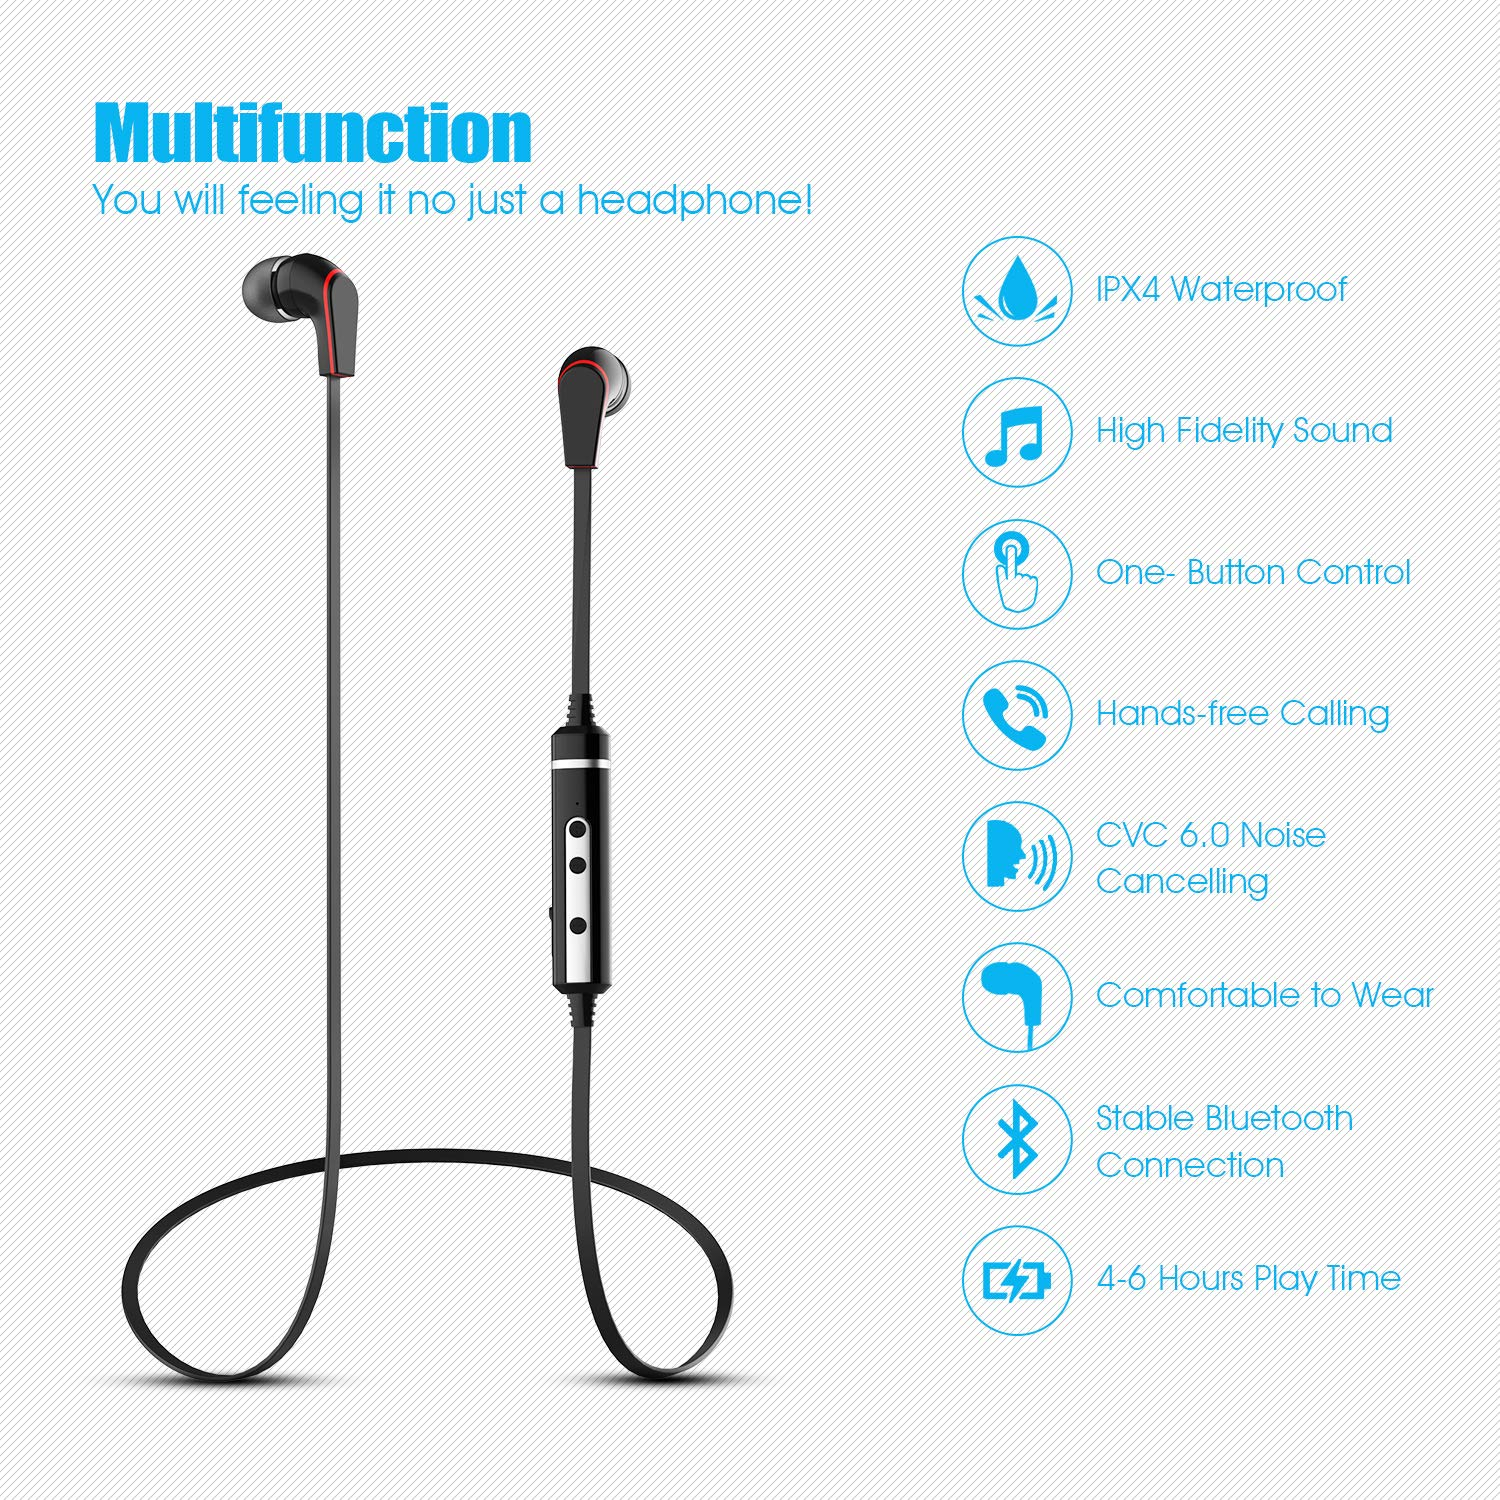 Running Headphones Bluetooth YUWISS Wireless Headphones Sports HD Stereo Headset w Mic IPX4 Sweatproof Music Earbuds for Running, Gym, Workout, Compatible with iPhone Samsung Android Black